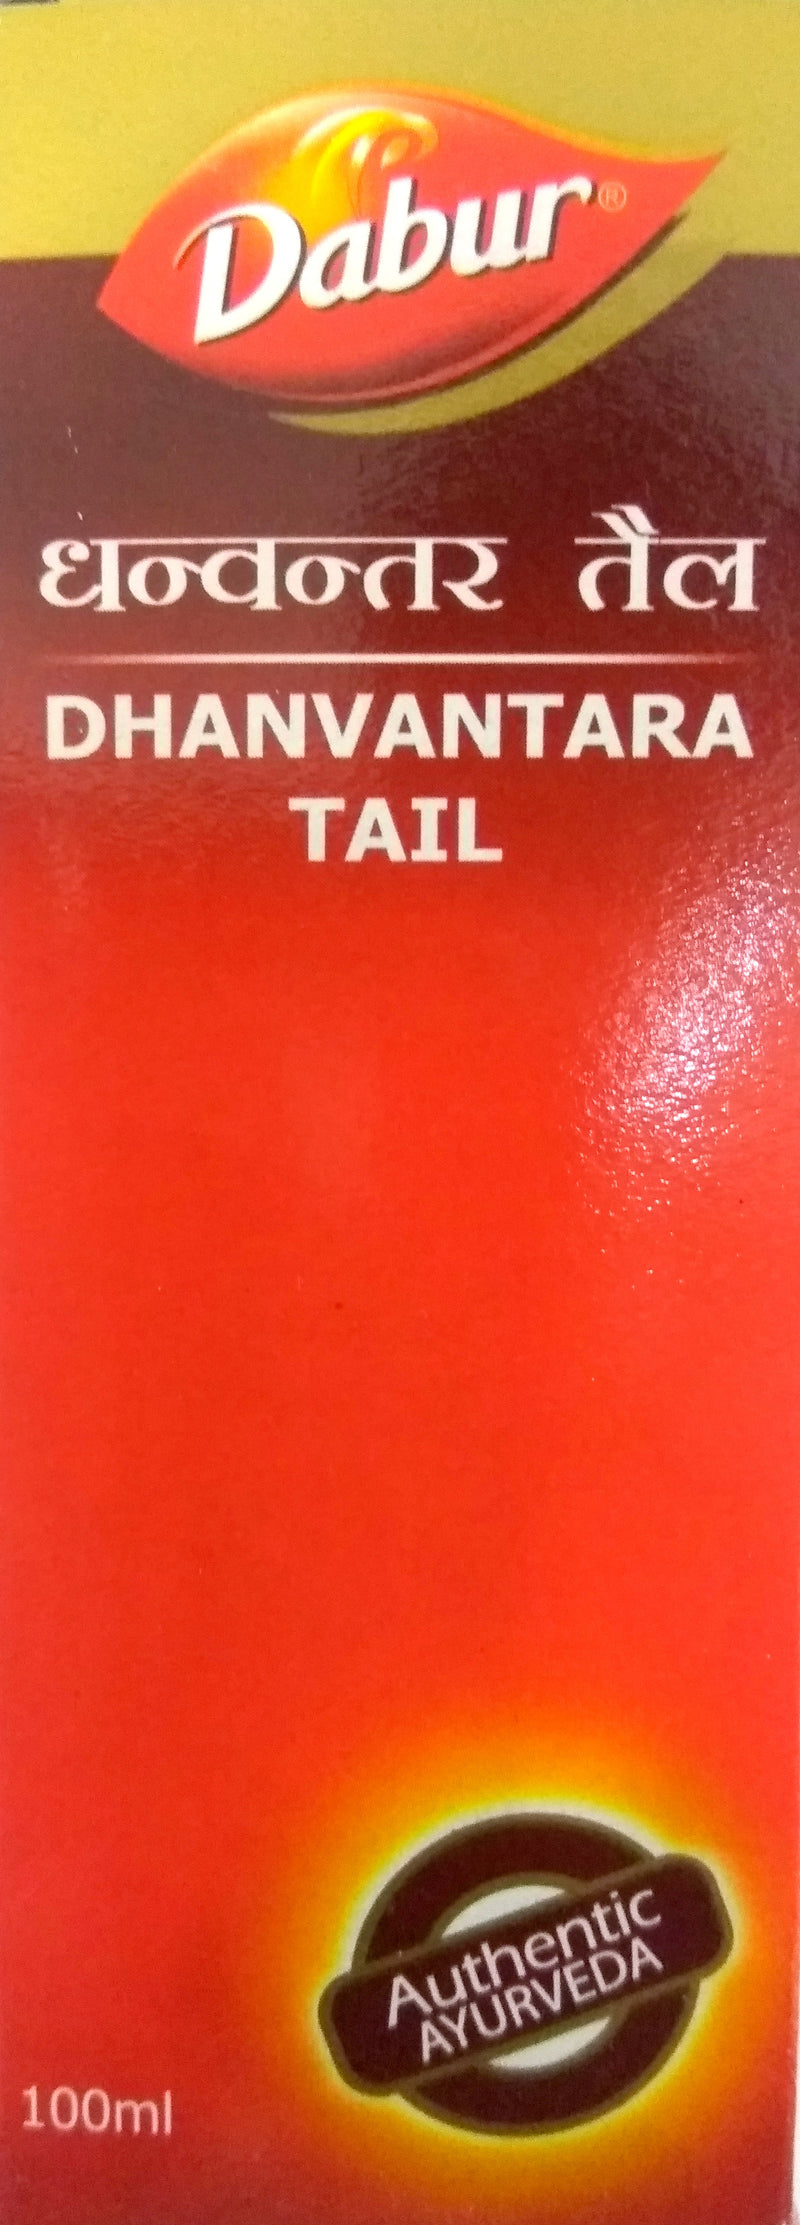 Dabur Dhanvantara Tail 100ml - Pack of 2 (Ayurvedic) - Ayush Care